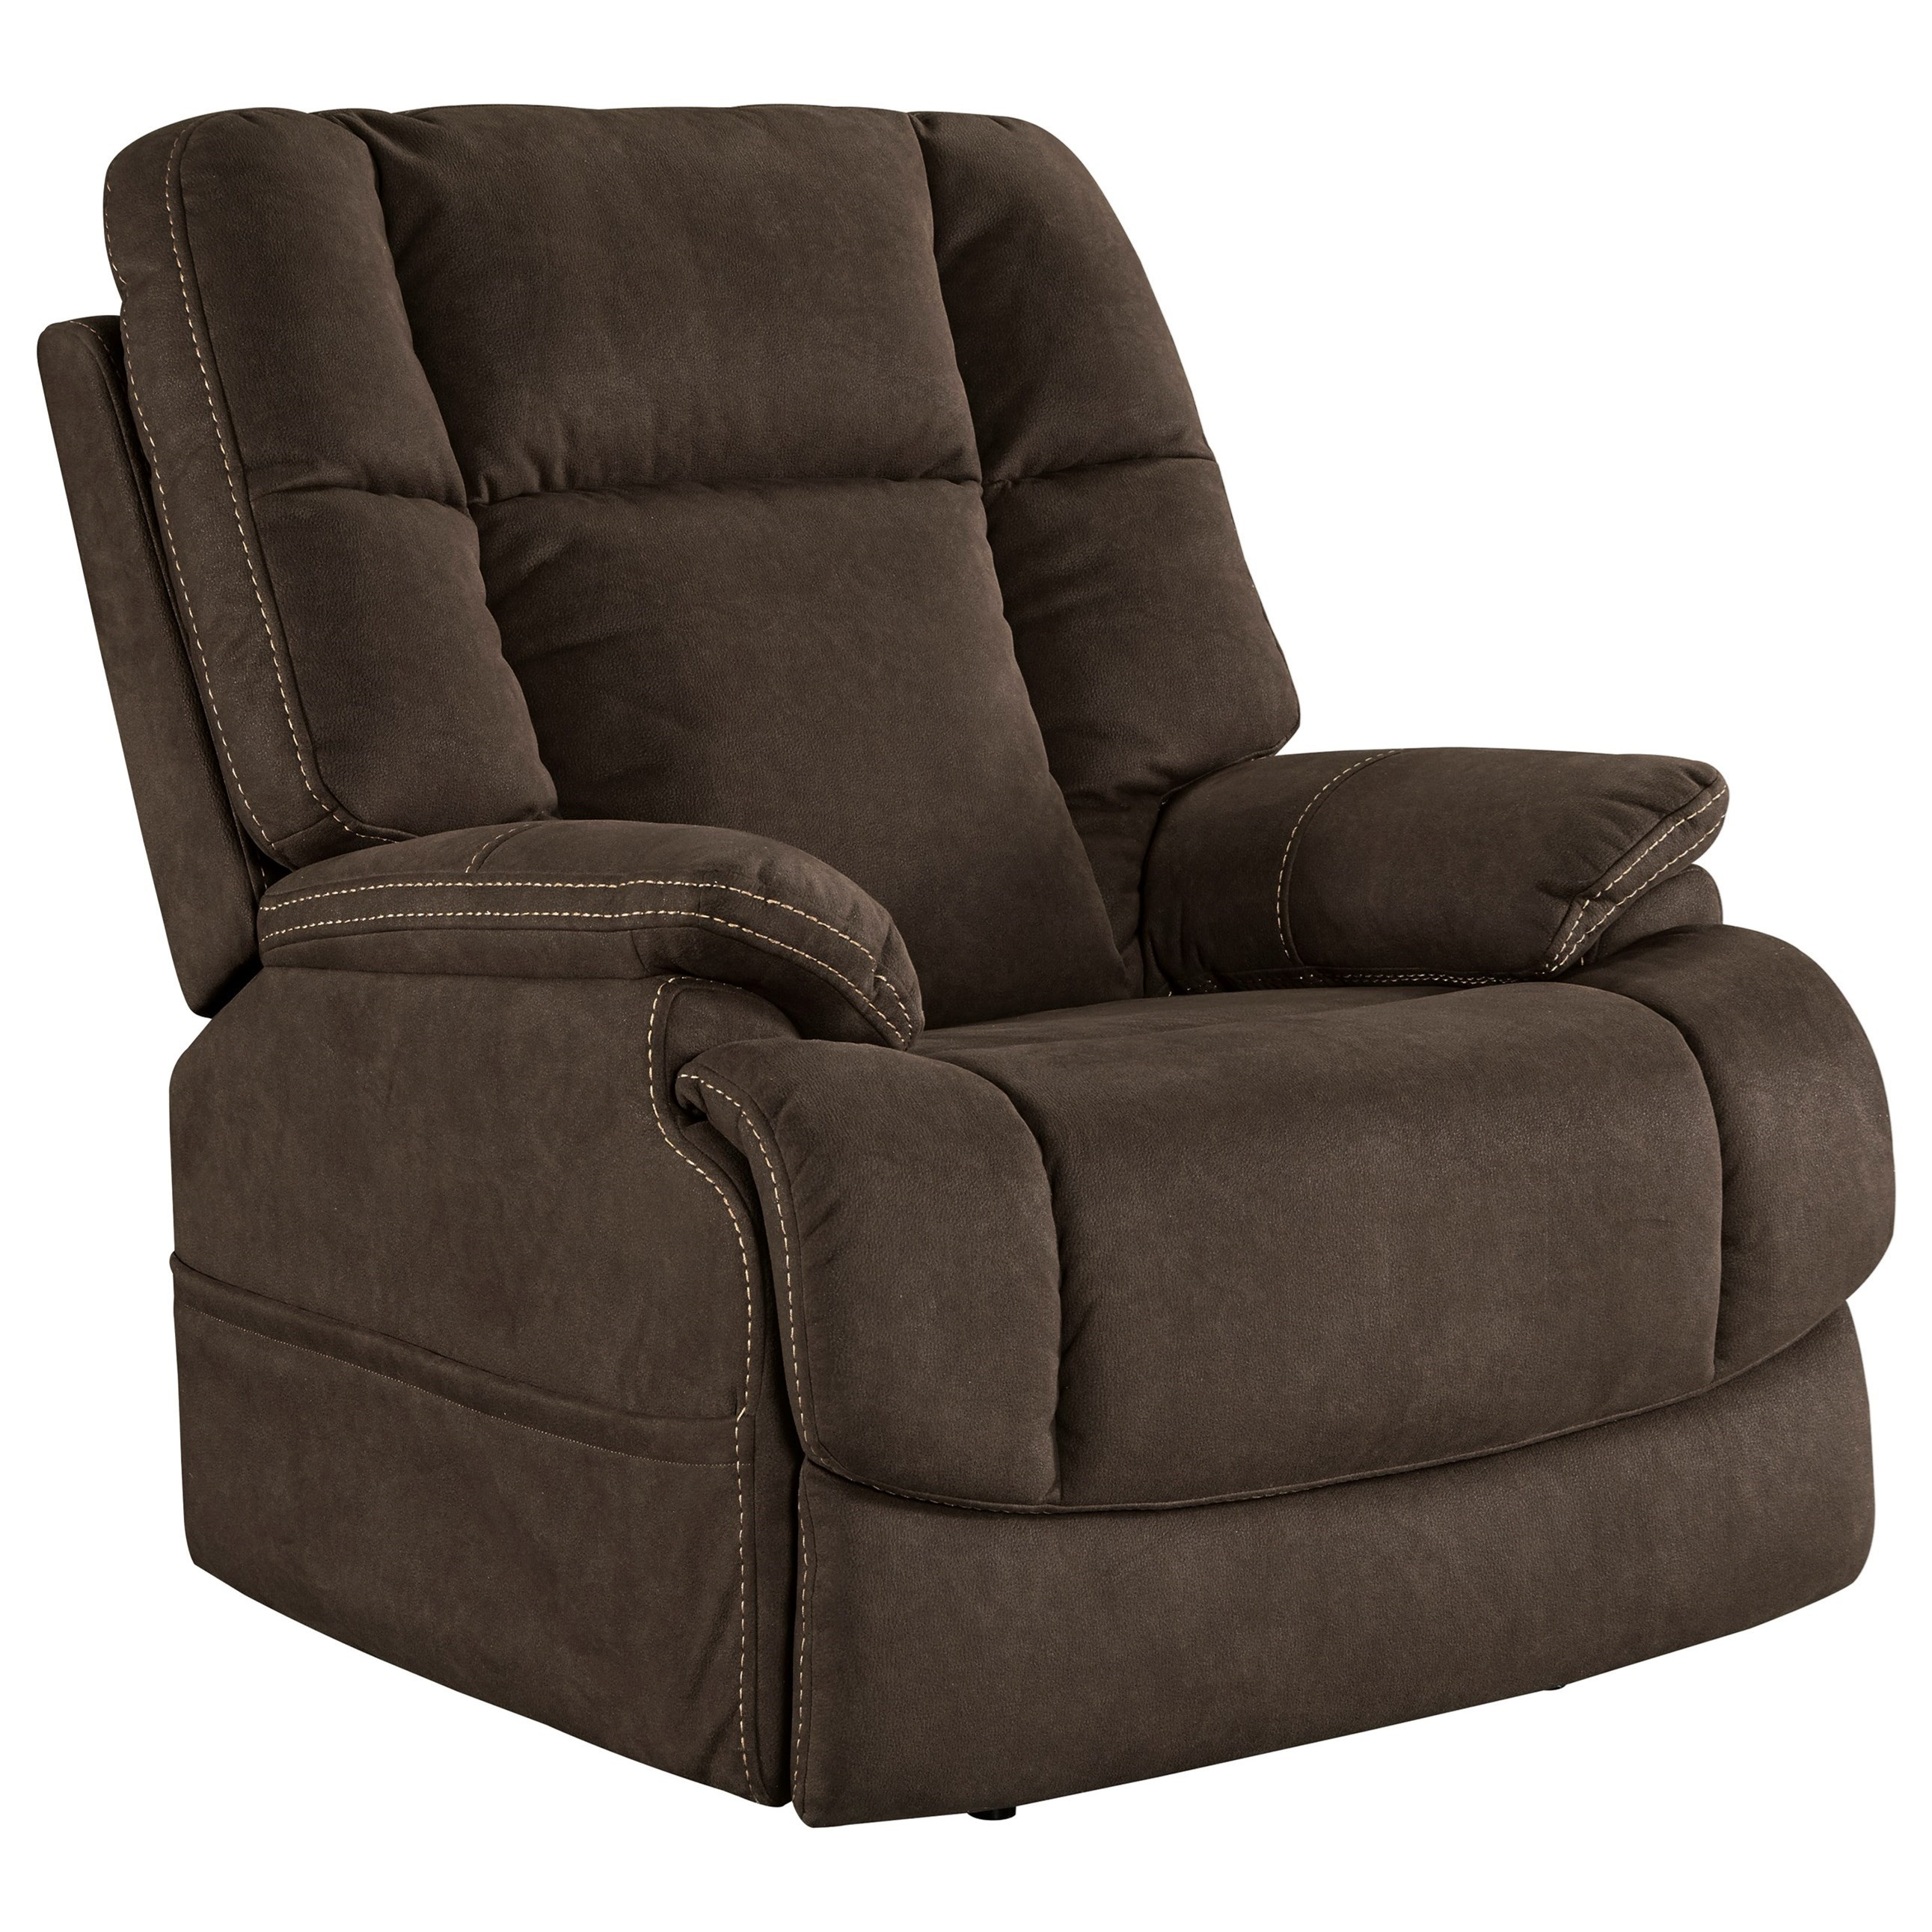 Chair and a half recliner ashley furniture - Ashley Signature Design Fourche Power Recliner With Adjustable Headrest